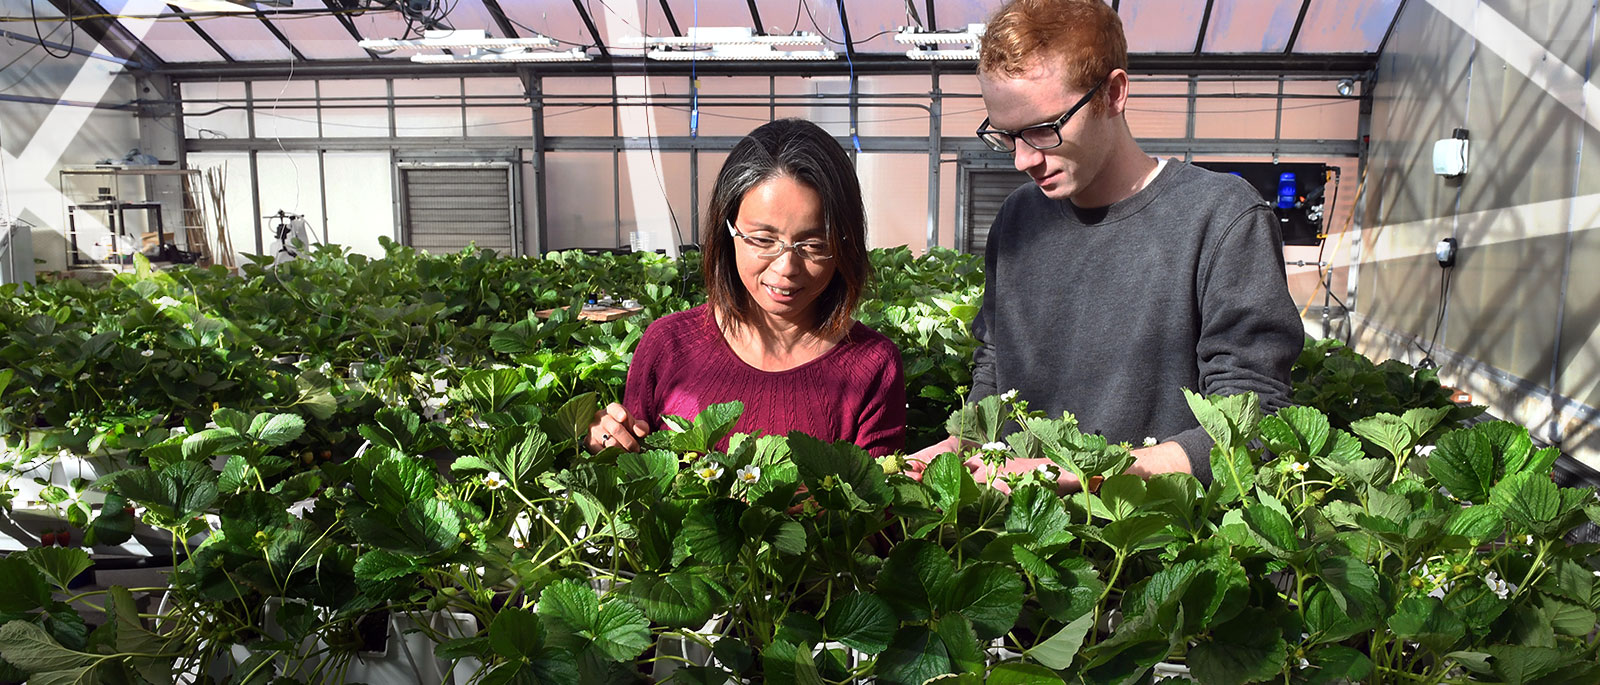 Ohio State Professor Chieri Kubota and a student examine crops grown using hydroponics inside a campus greenhouse.